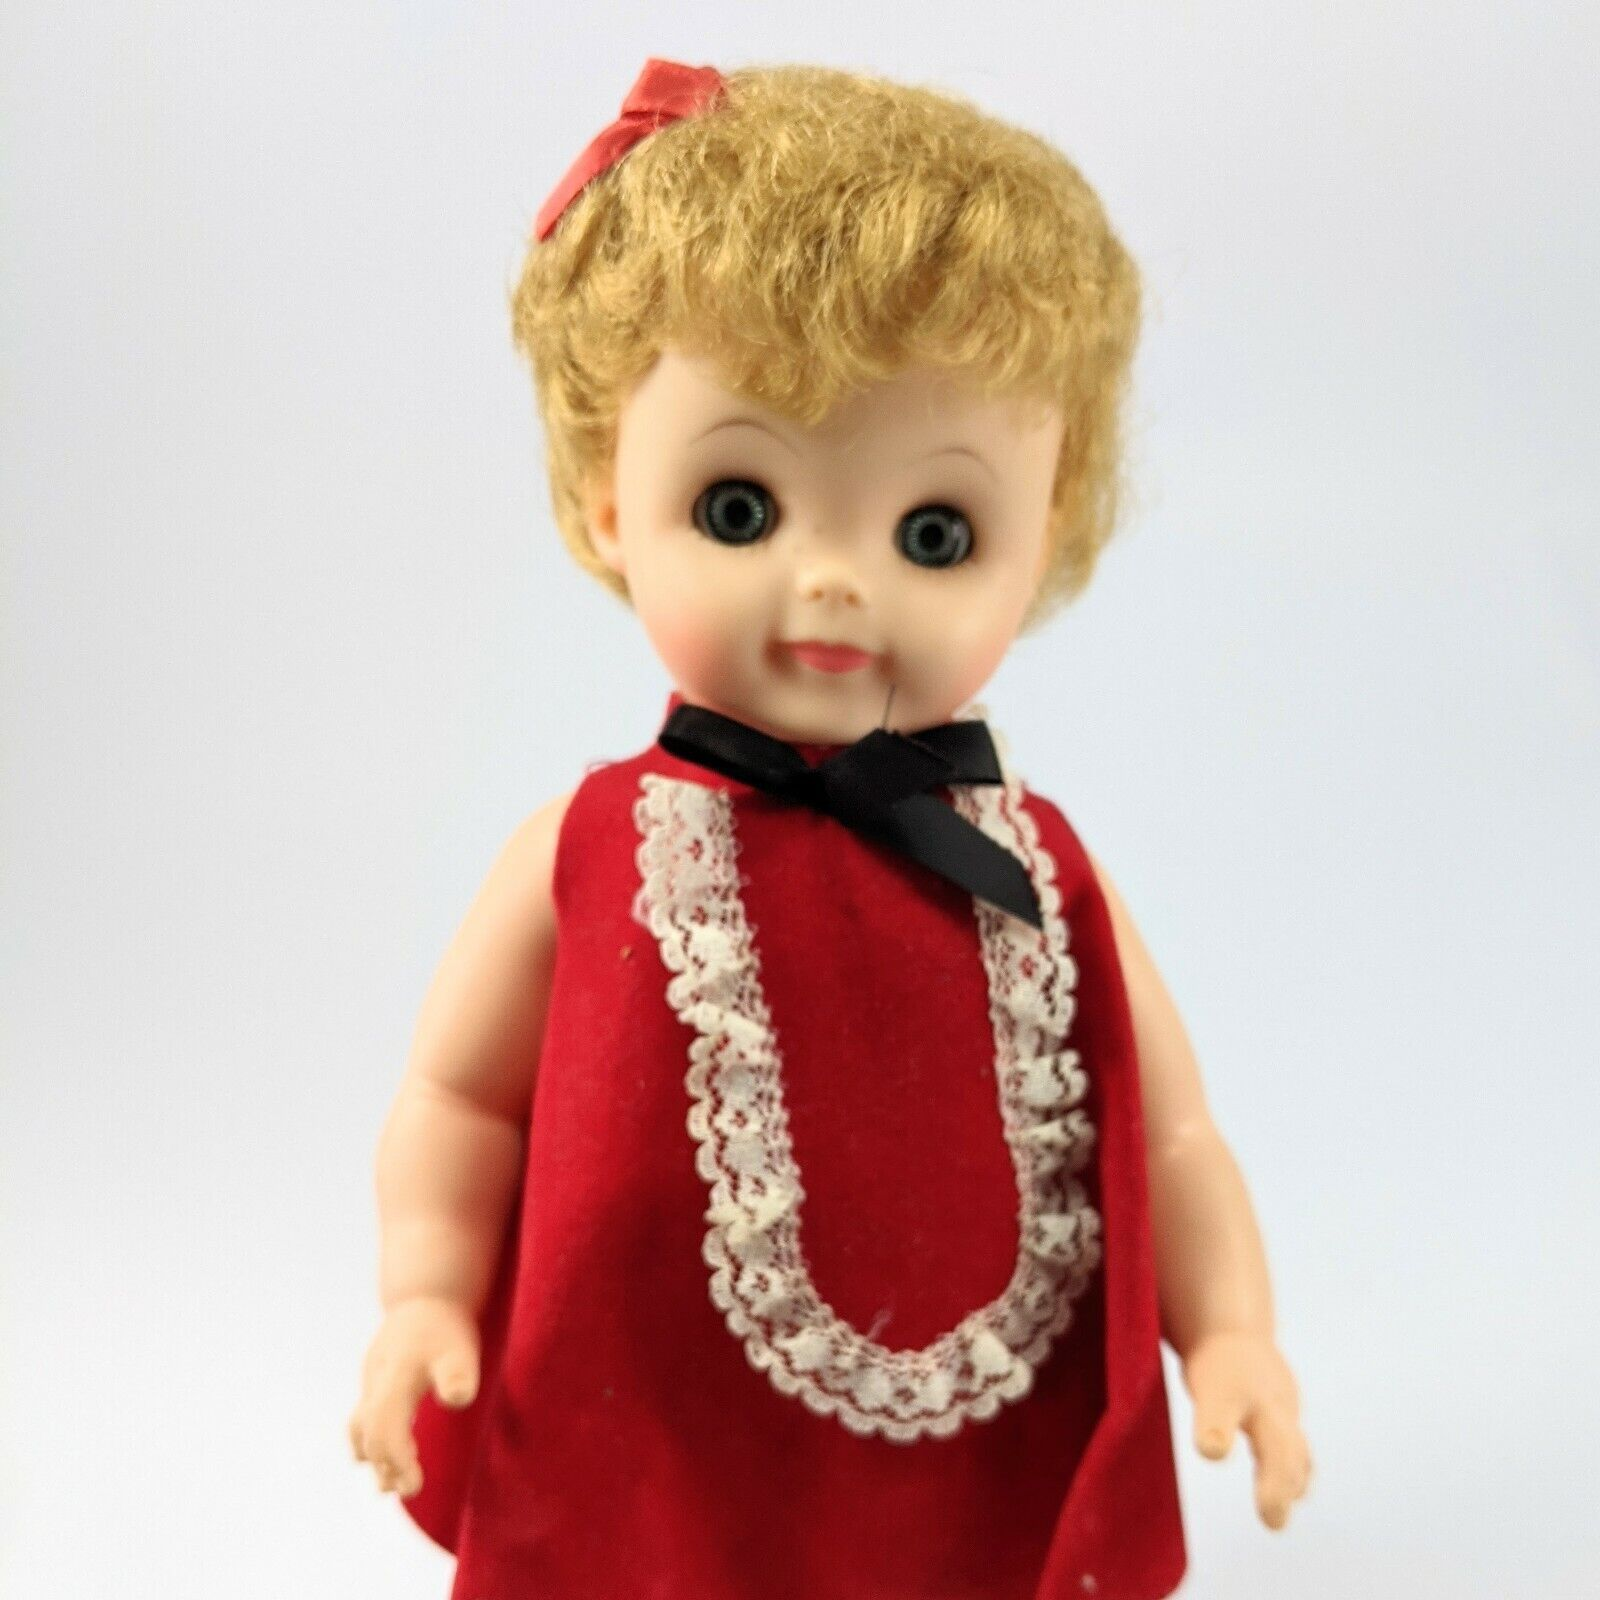 """Vintage 1960's Baby Doll Made in USA 11"""" tall"""